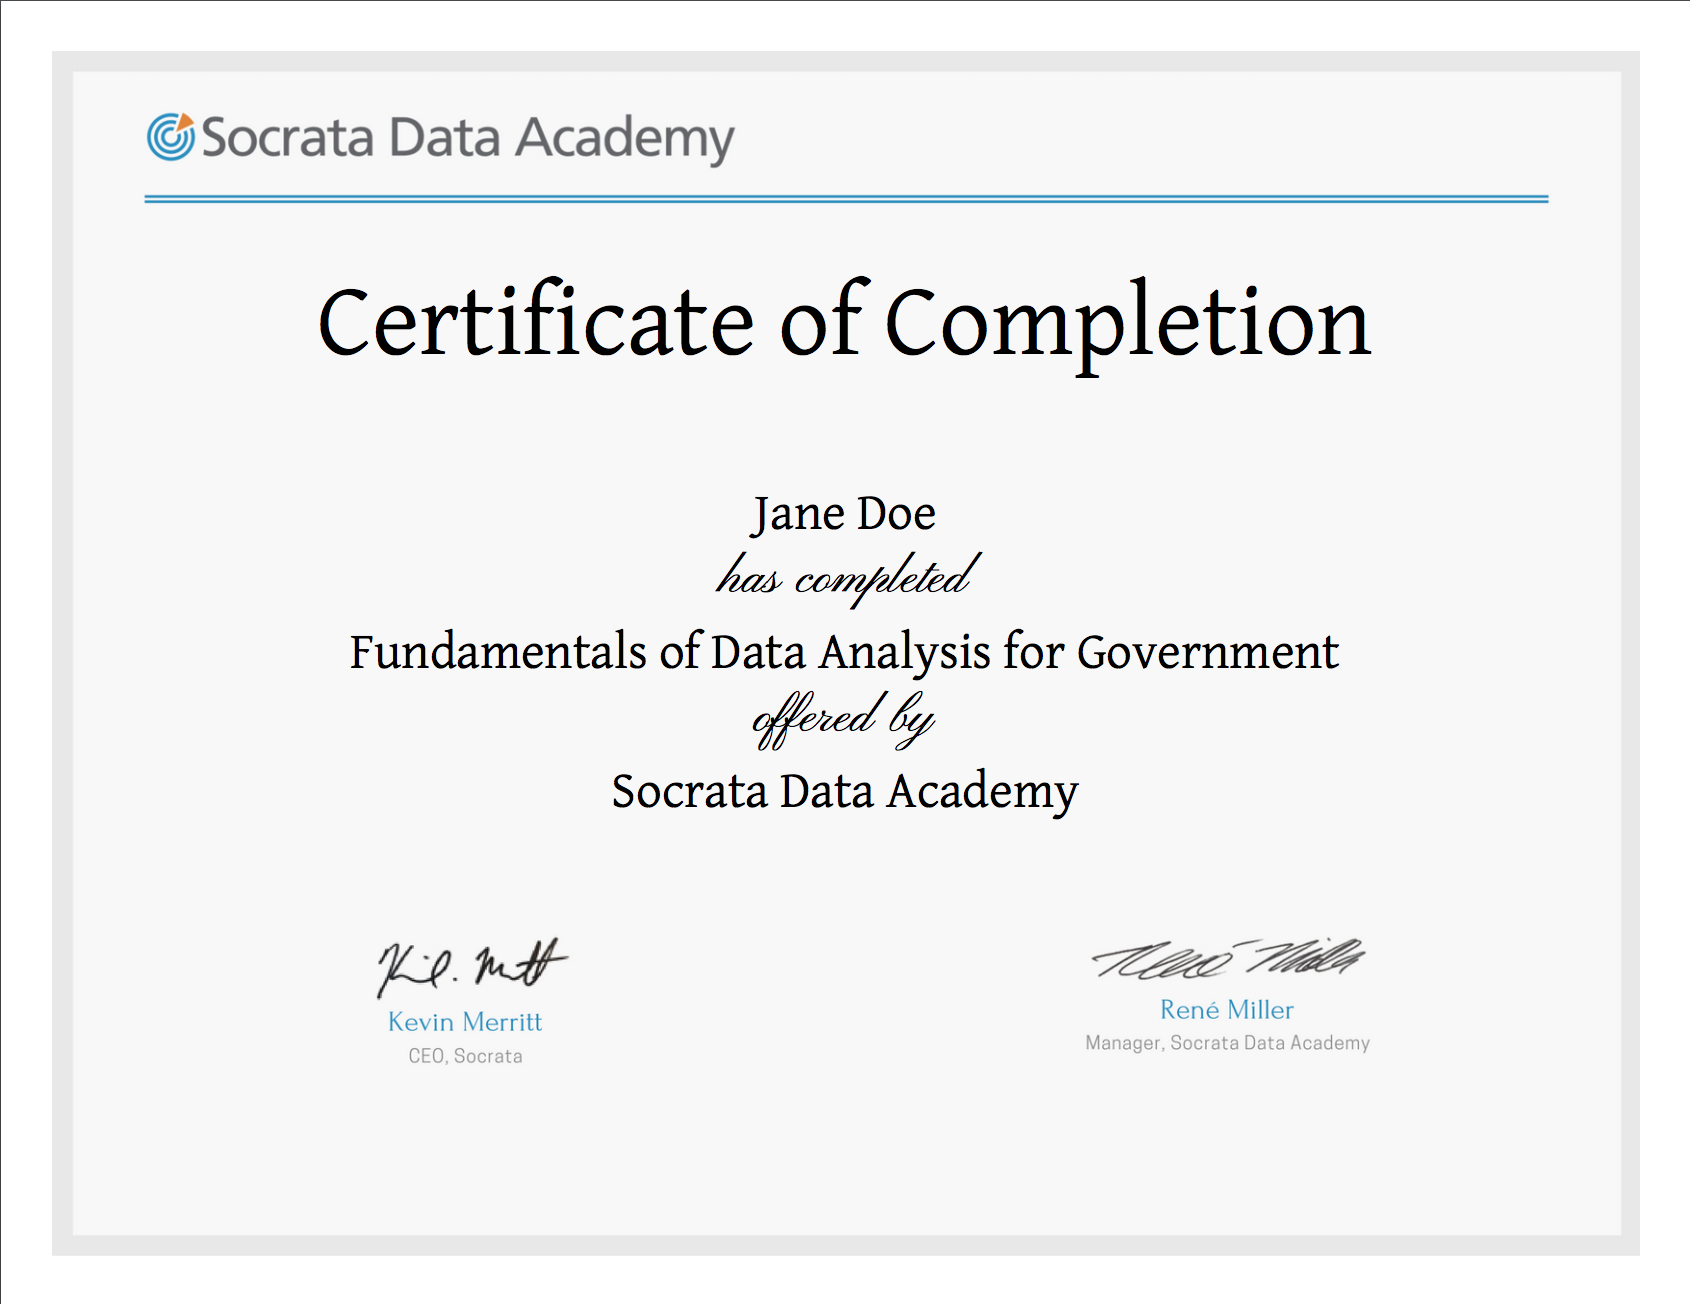 Certification Test for Fundamentals of Data Analysis for Government